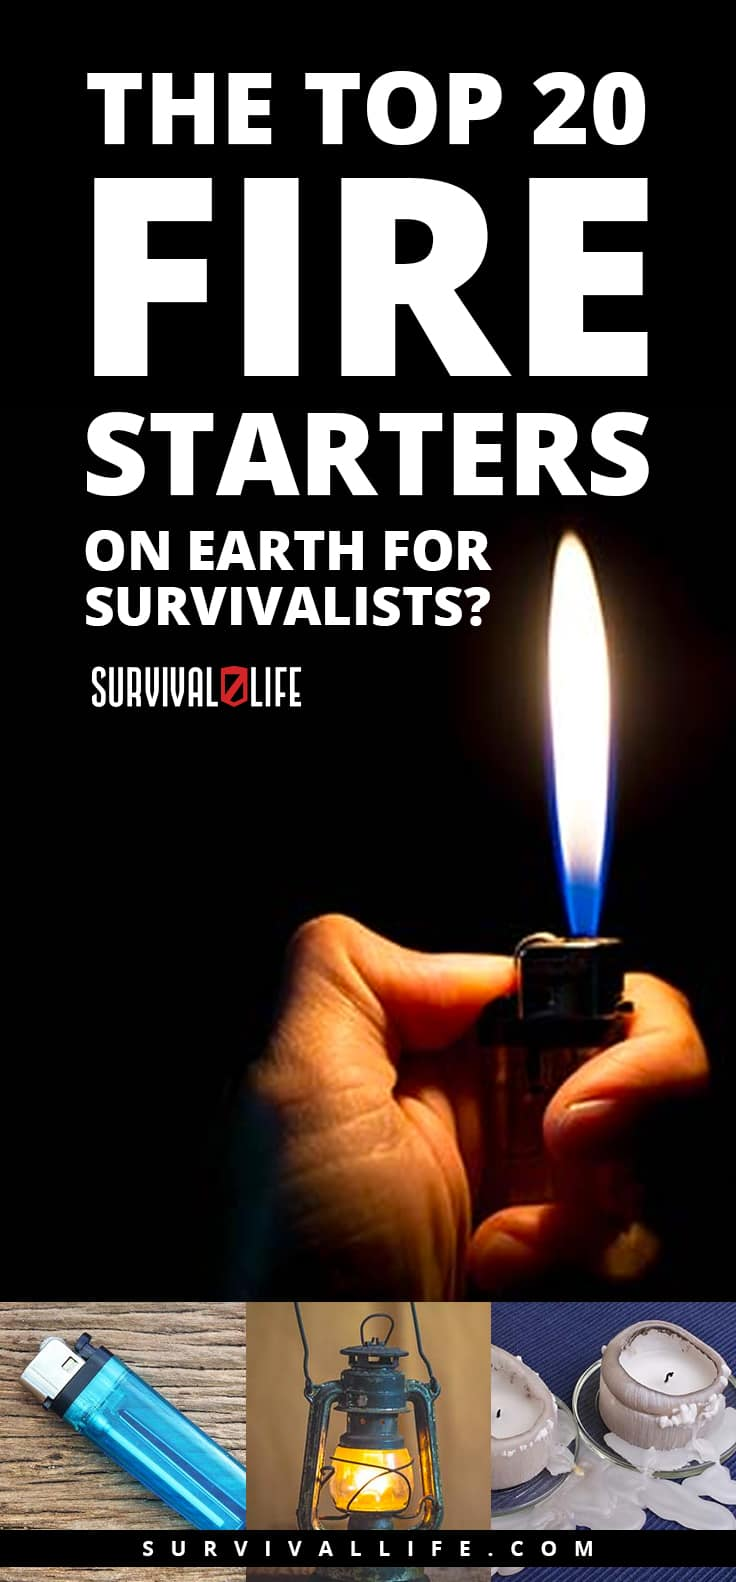 The Top 20 Fire Starters On Earth For Survivalists? | Survival Life